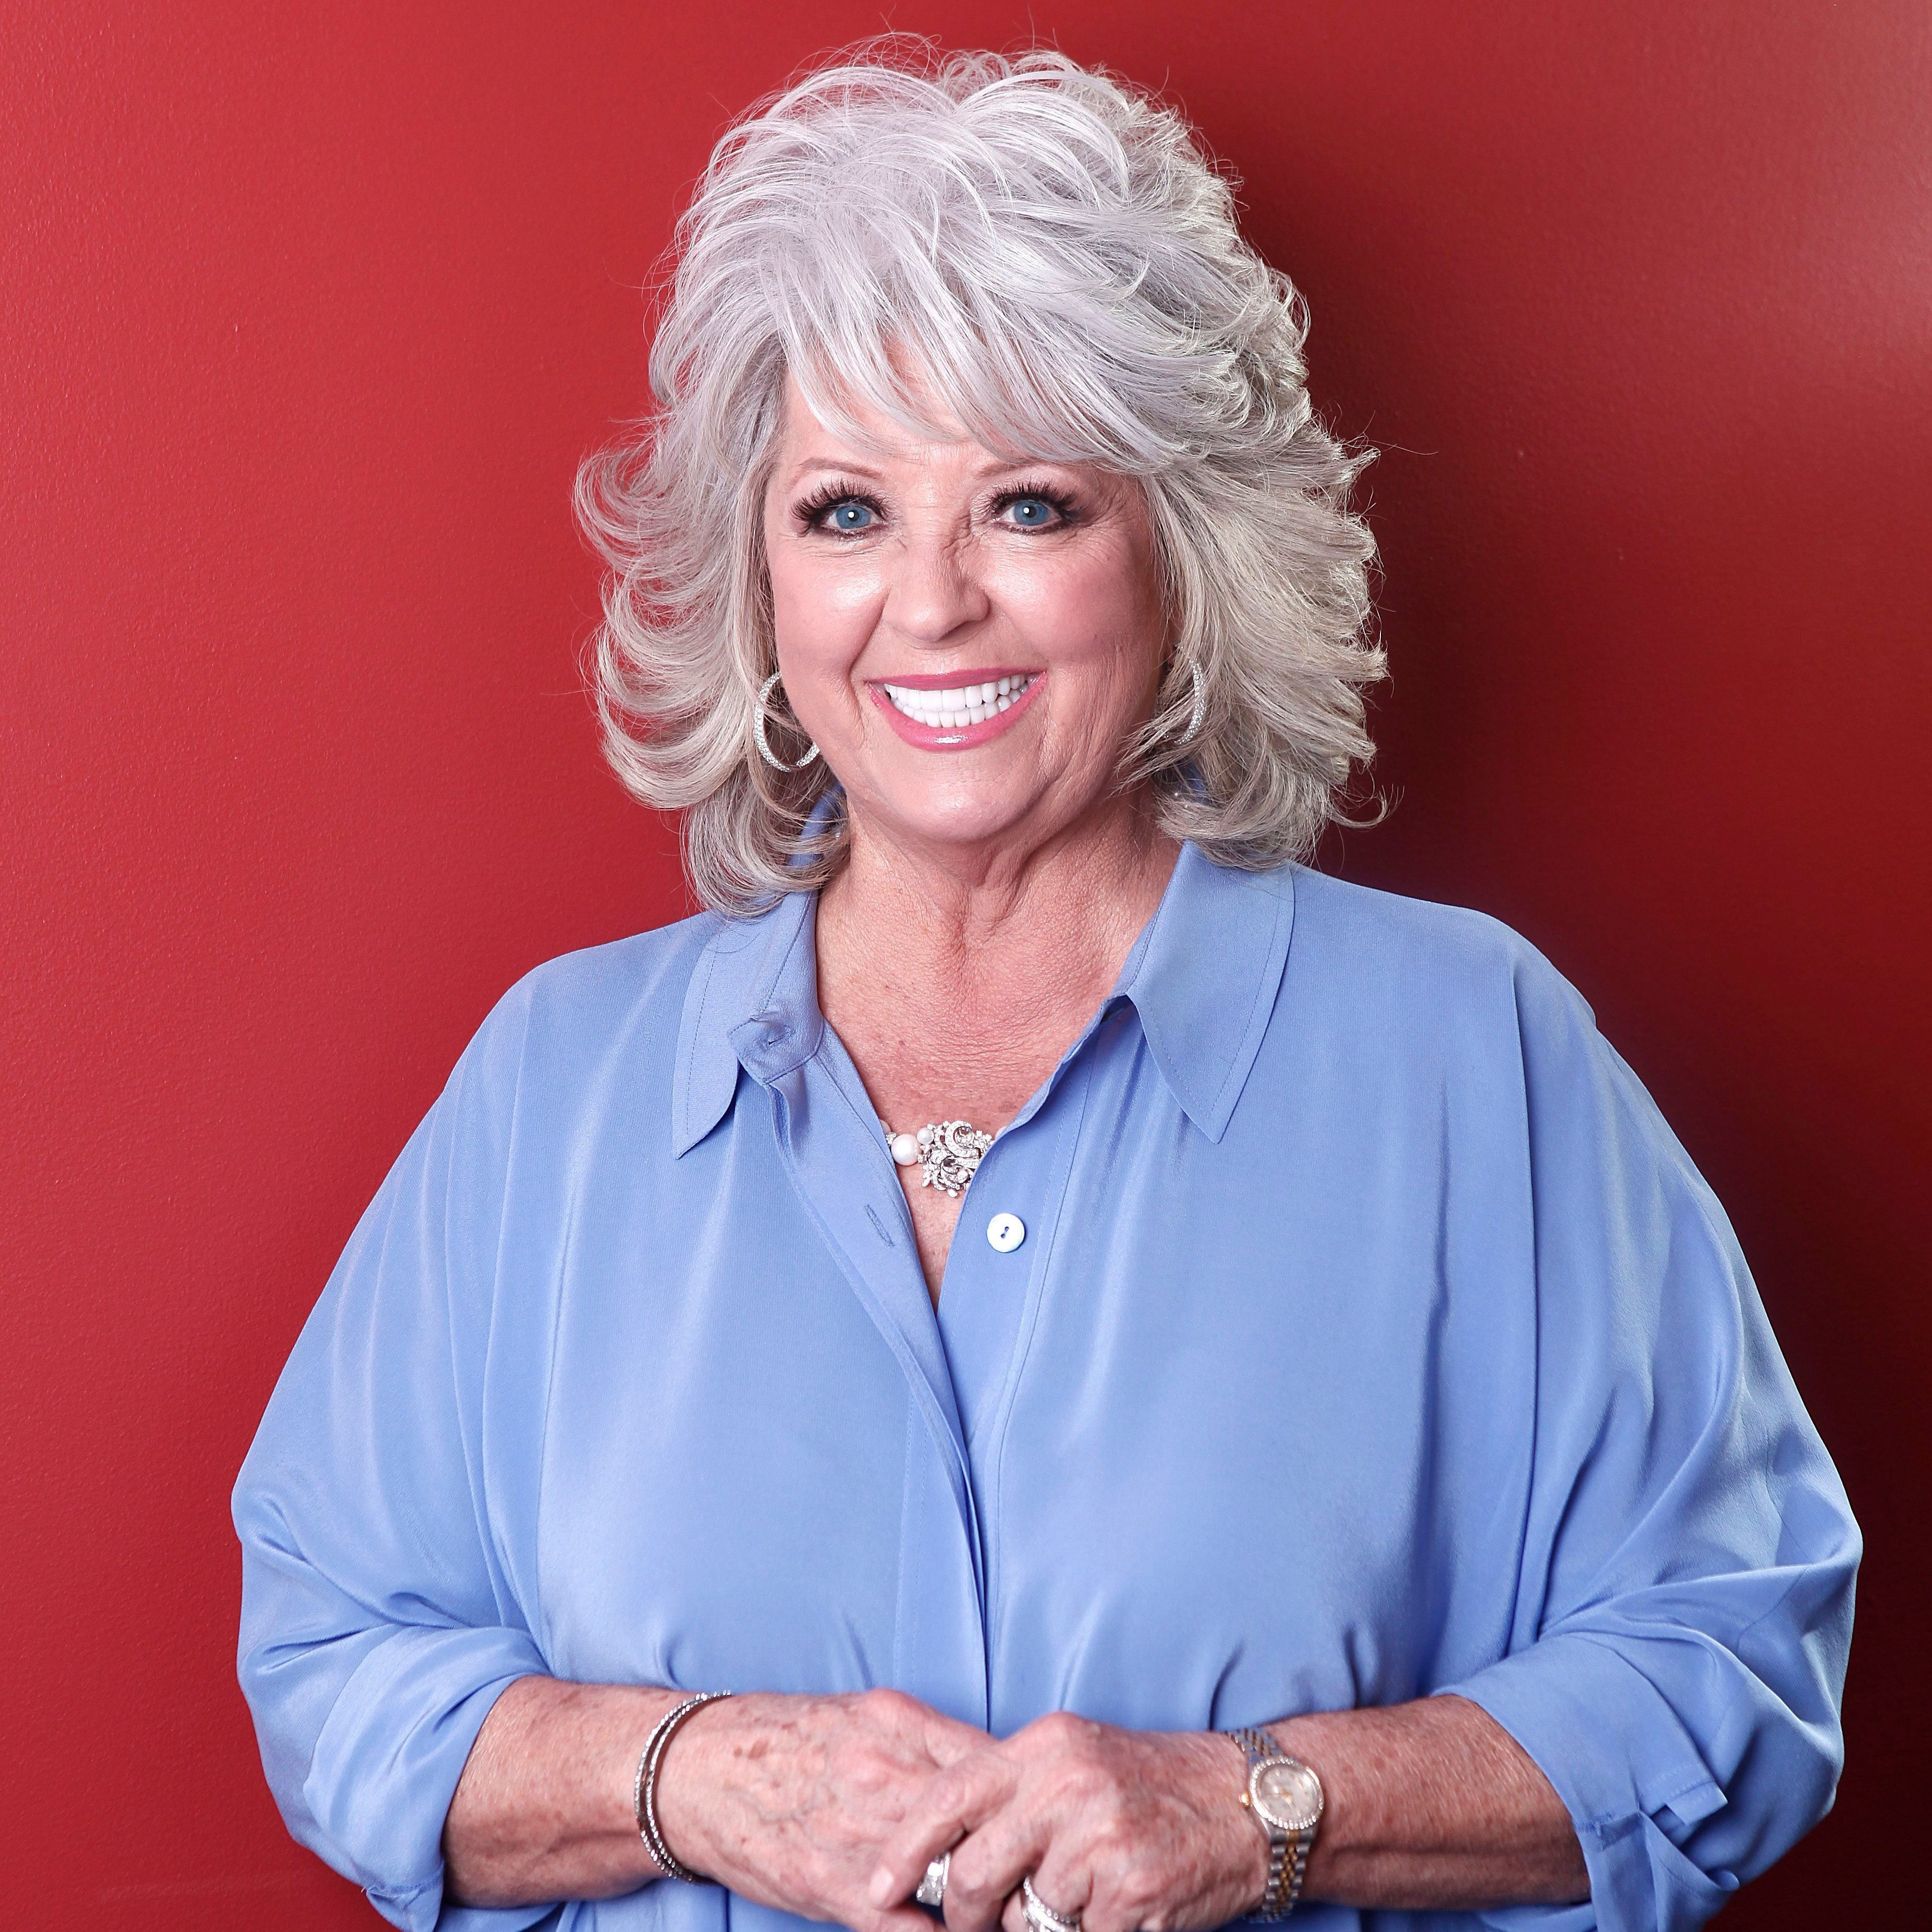 Mandatory Credit: Photo by Carlo Allegri/AP/Shutterstock (10473306a) Celebrity chef Paula Deen poses for a portrait in New York. Two of Paula Deen's Family Kitchen locations have closed in the Florida Panhandle. Paula Deen Ventures spokesman Jaret Keller confirmed, that licensing partner Phoenix Hospitality has decided to close its Destin and Panama City Beach restaurants Paula Deen Restaurant Closings, New York, USA - 17 Jan 2012